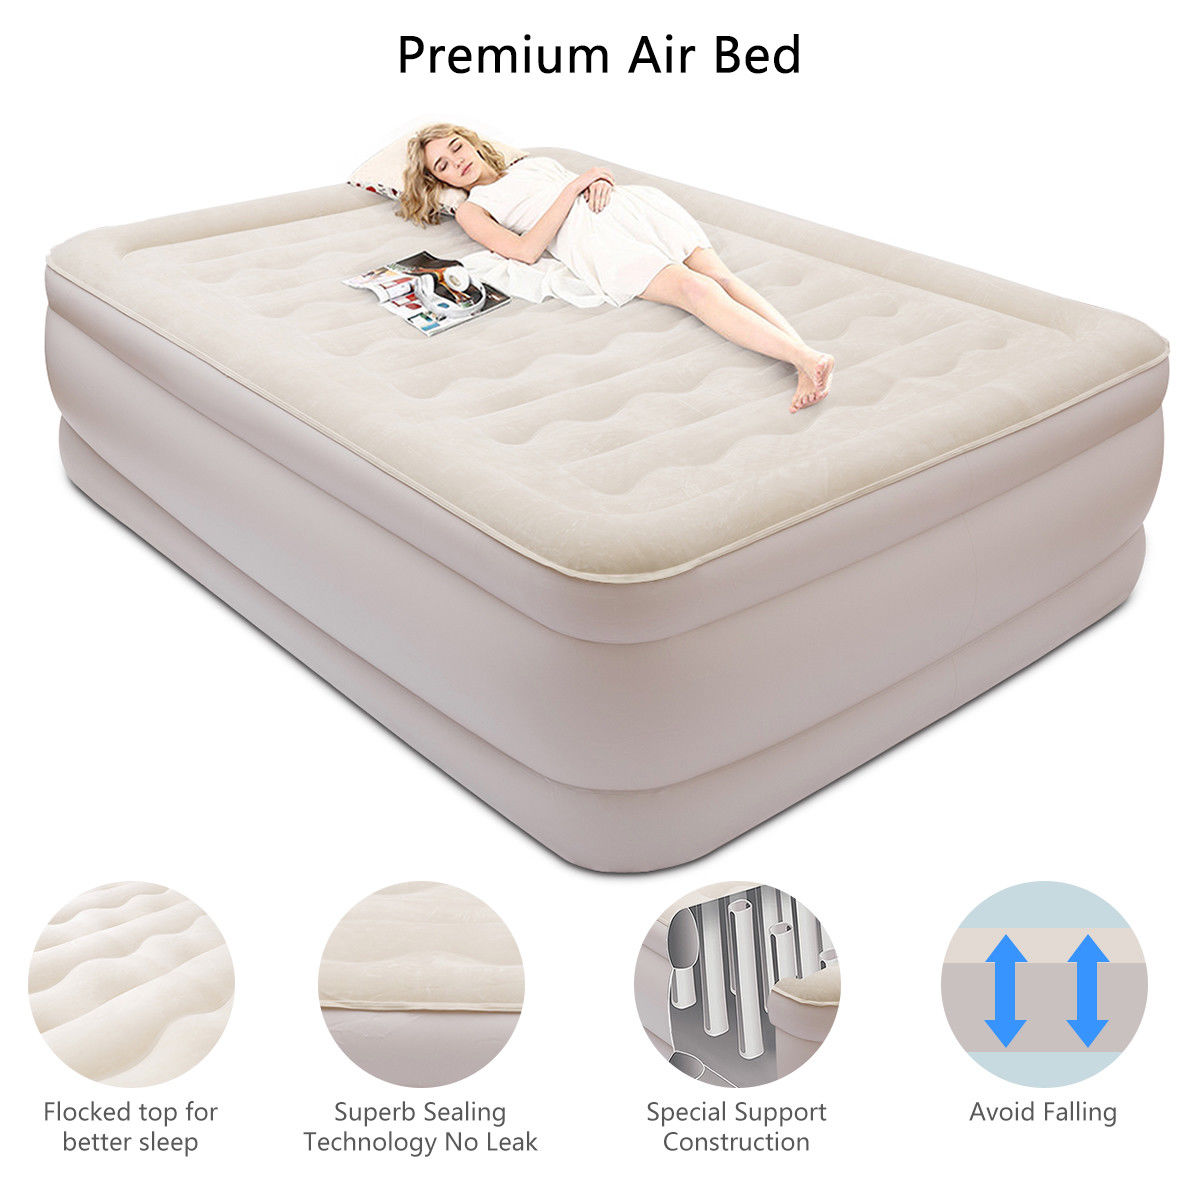 Costway Queen Size Luxury Elevated Air Bed